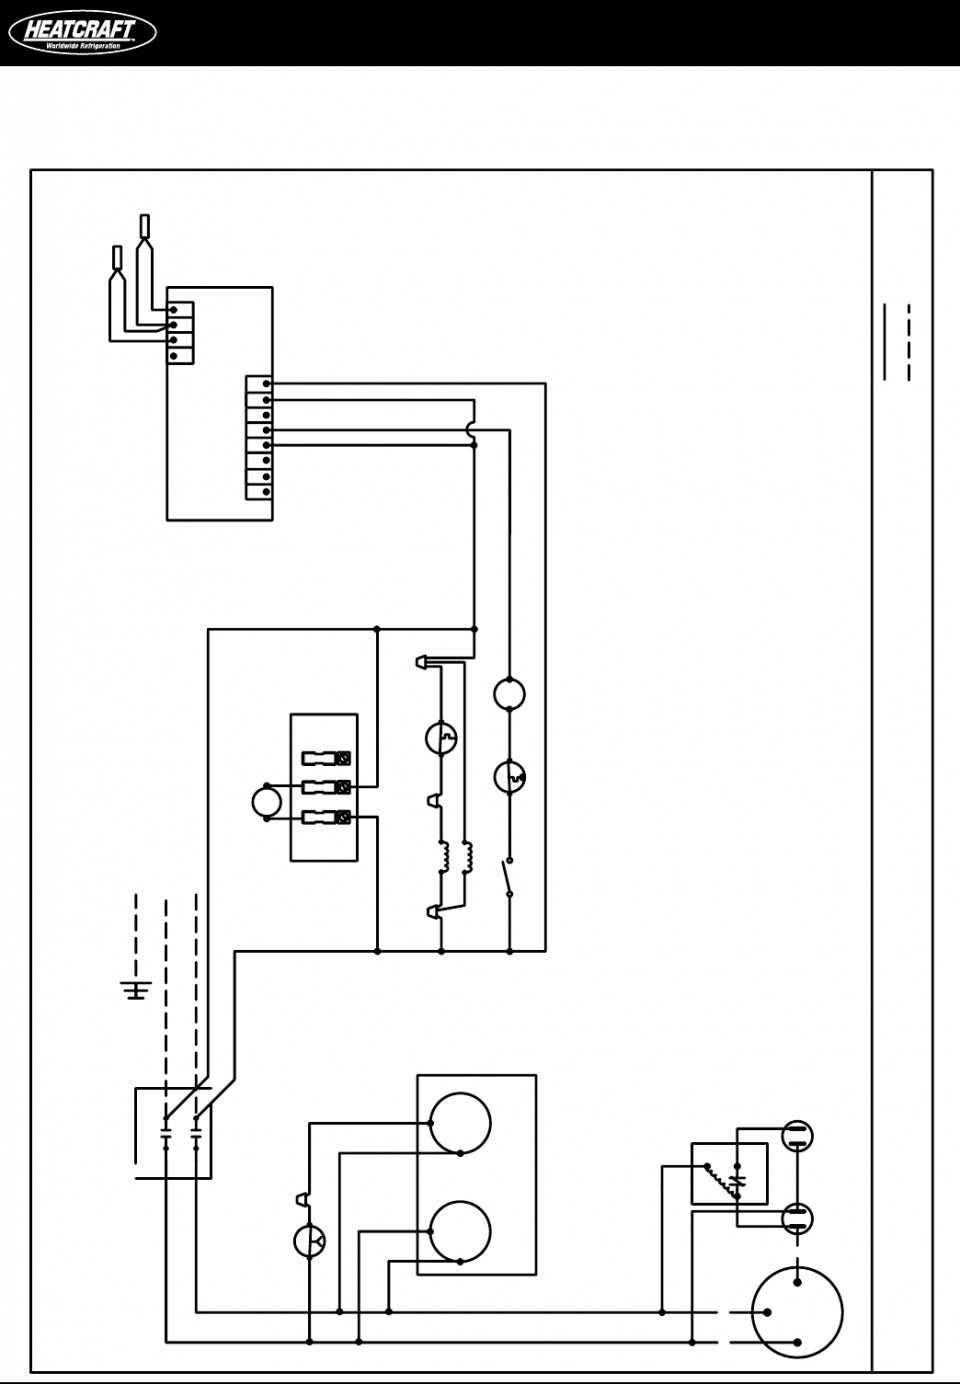 norwalk cooler condenser wiring diagram